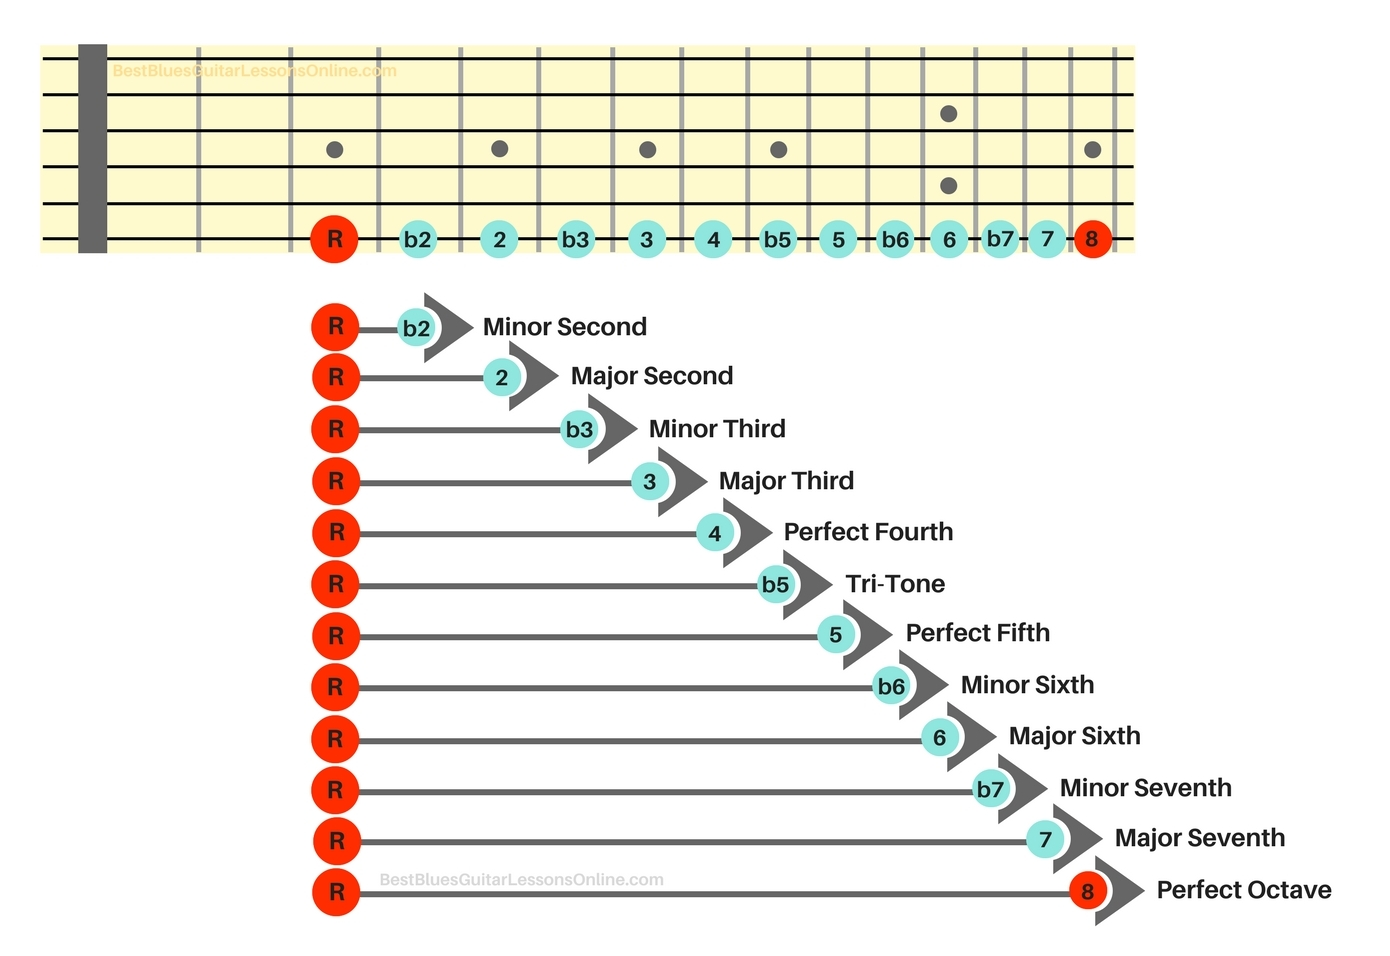 hight resolution of let s take a look at the existing intervals on this guitar intervals chart